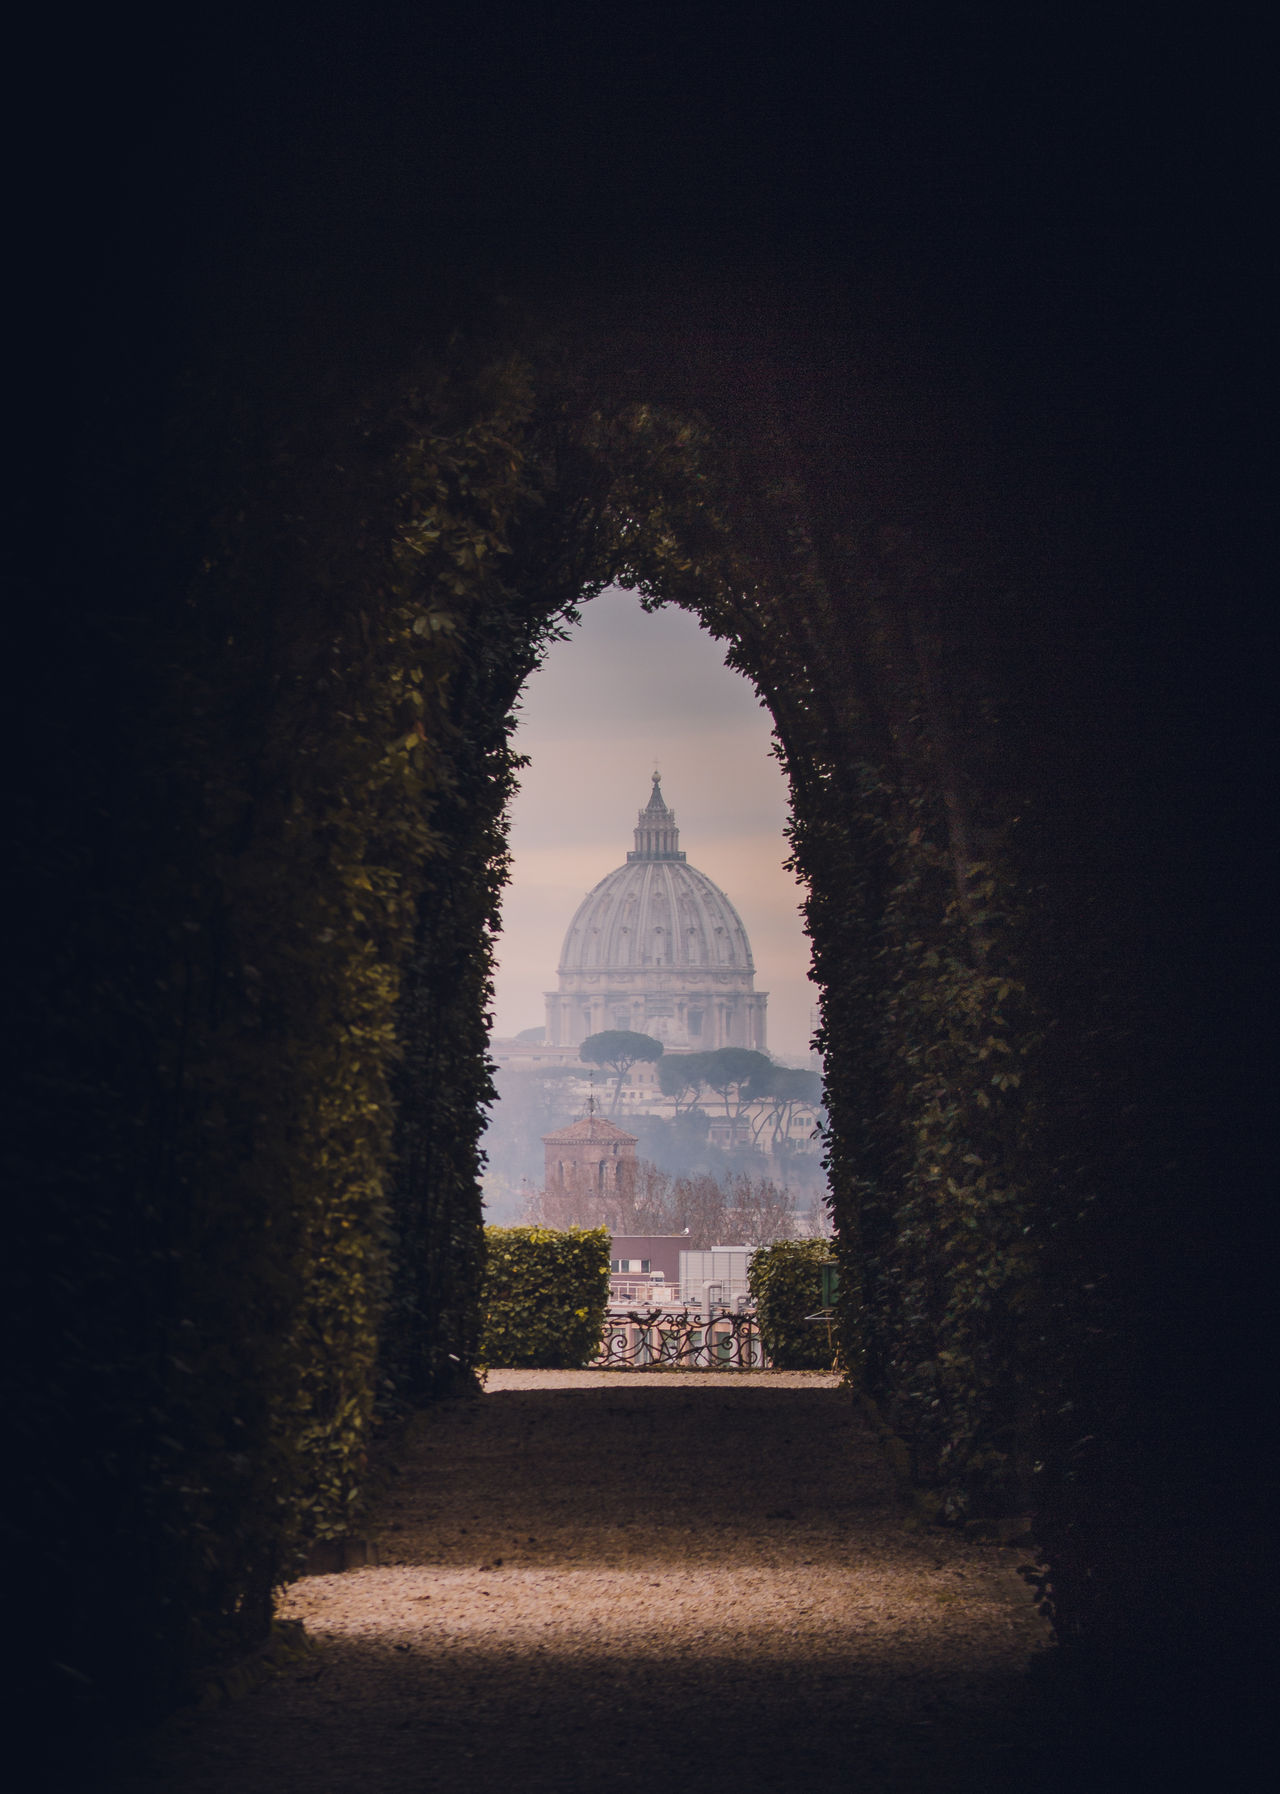 Cathedral seen through archway